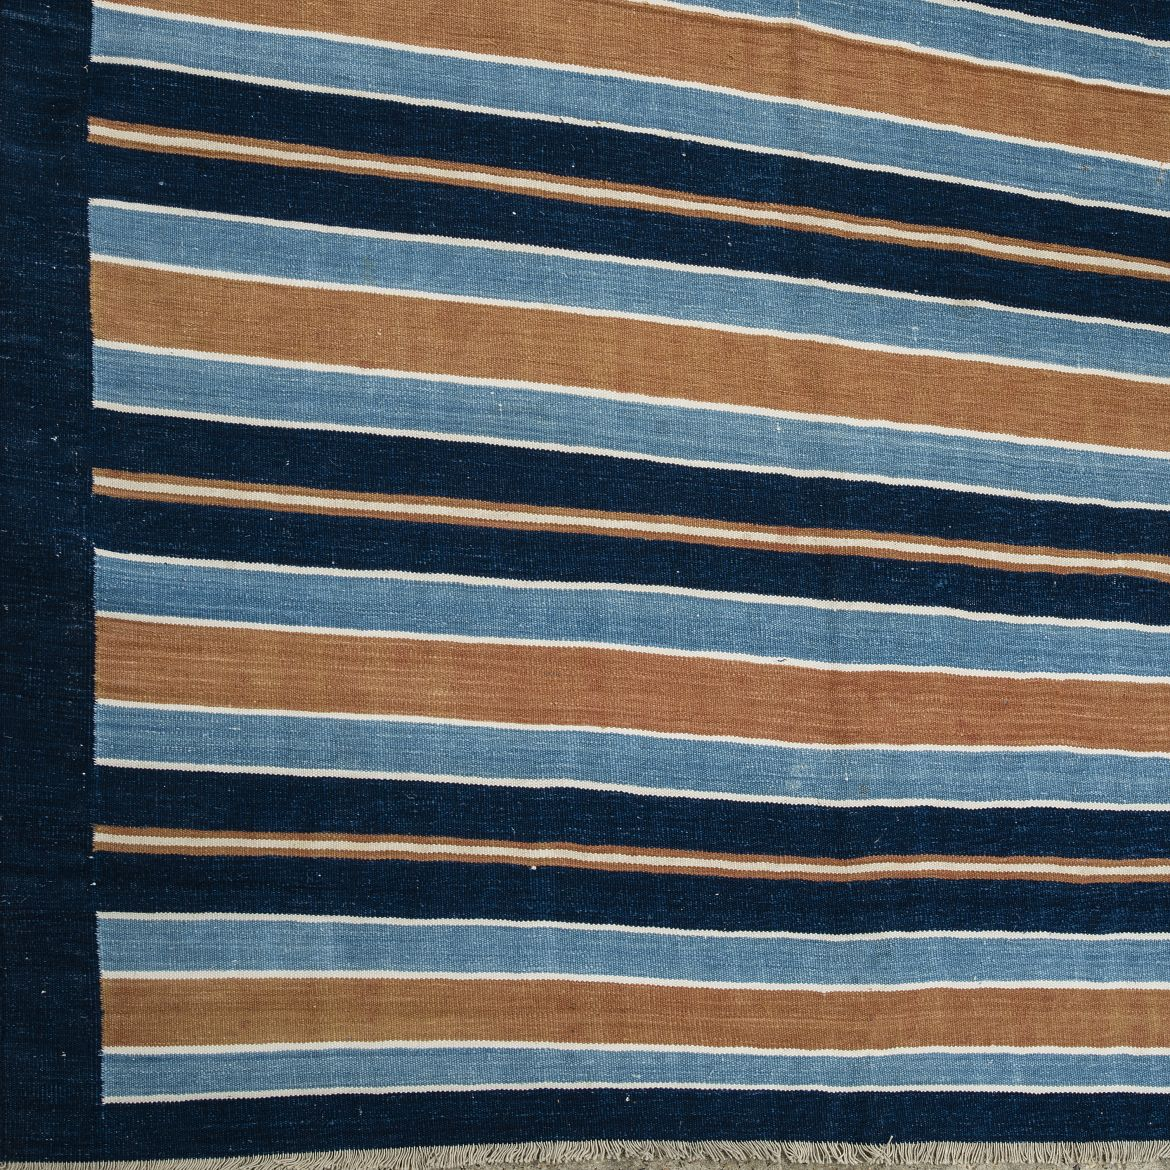 Blues and Caramel Striped Dhurrie